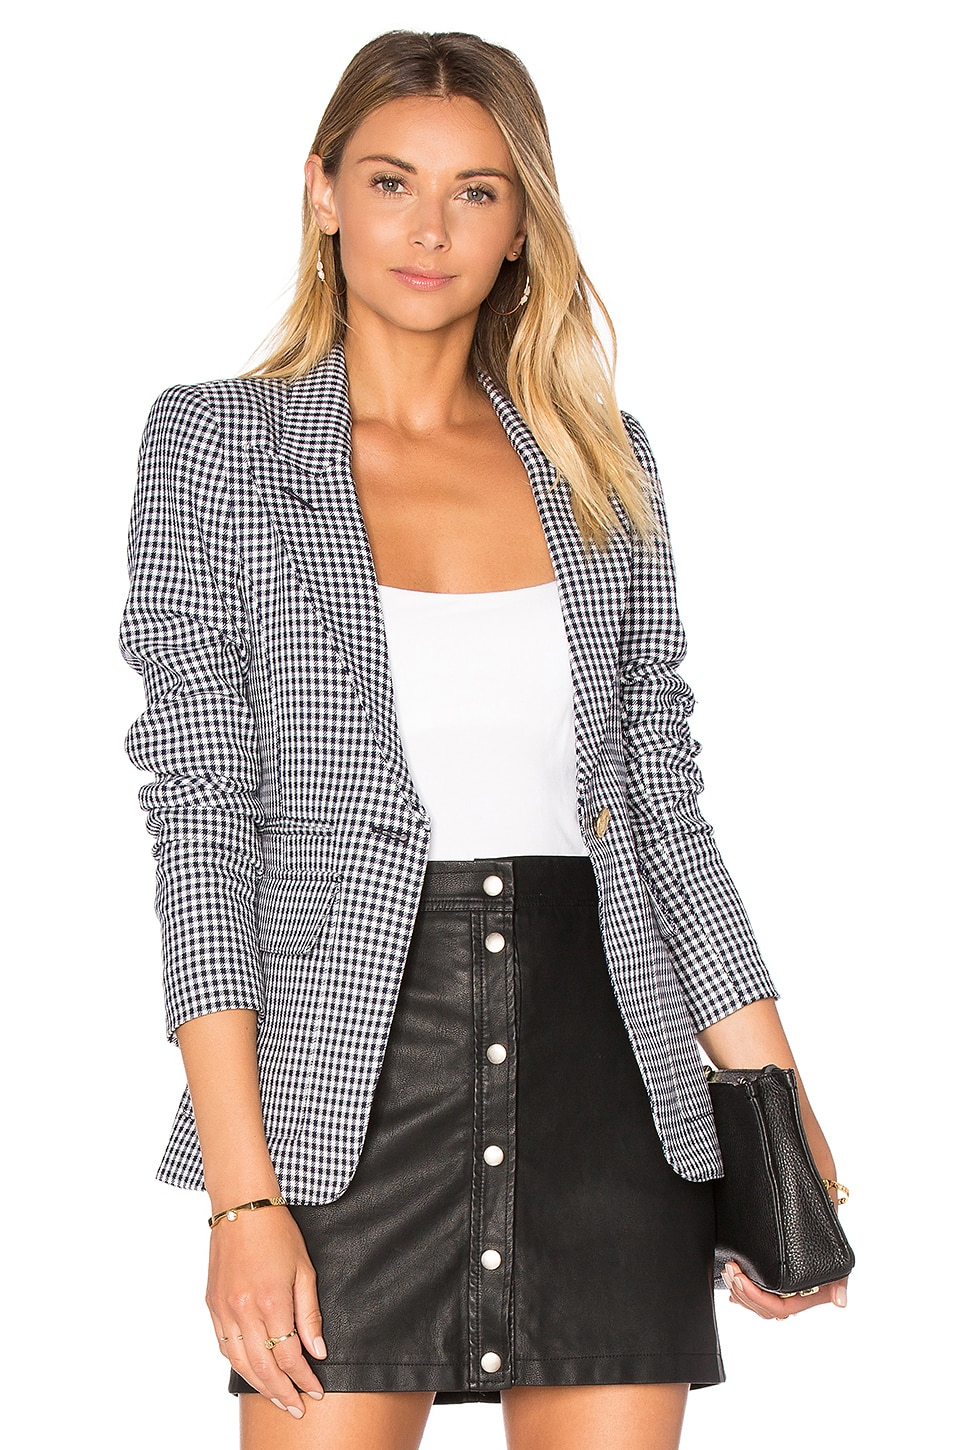 Patch Pocket Blazer at REVOLVE